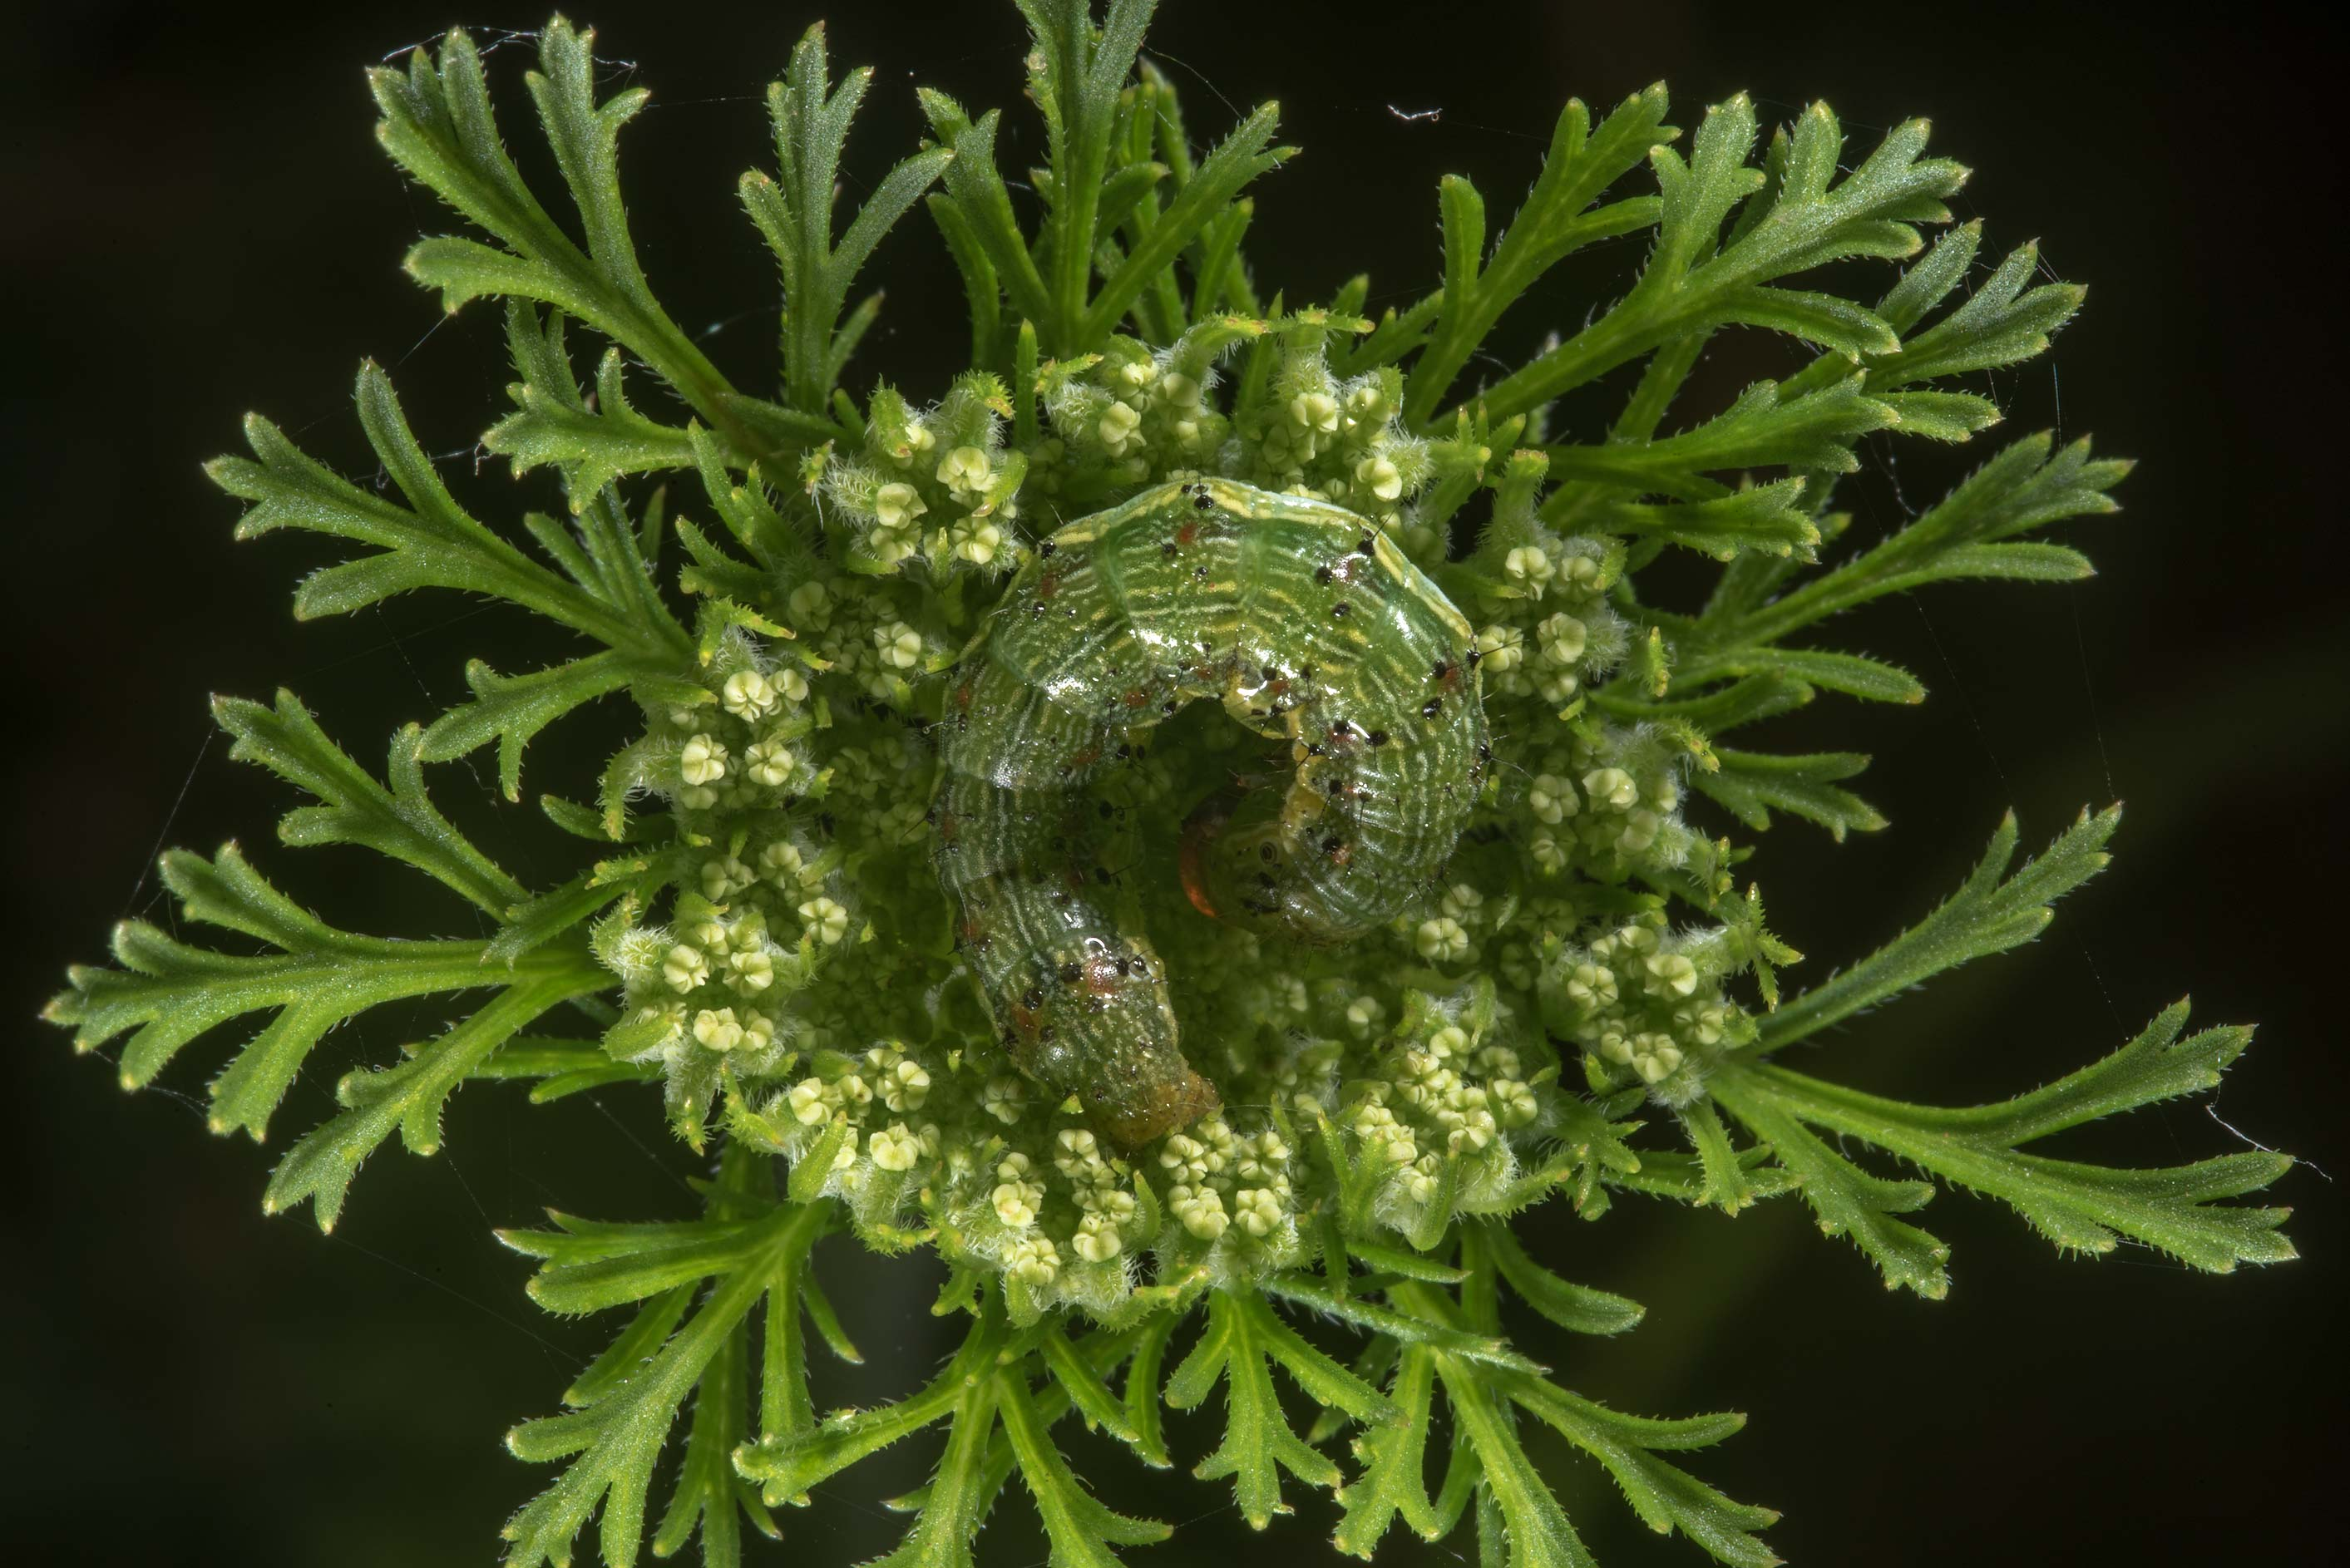 Green caterpillar on flowers of wild carrot...State Historic Site. Washington, Texas